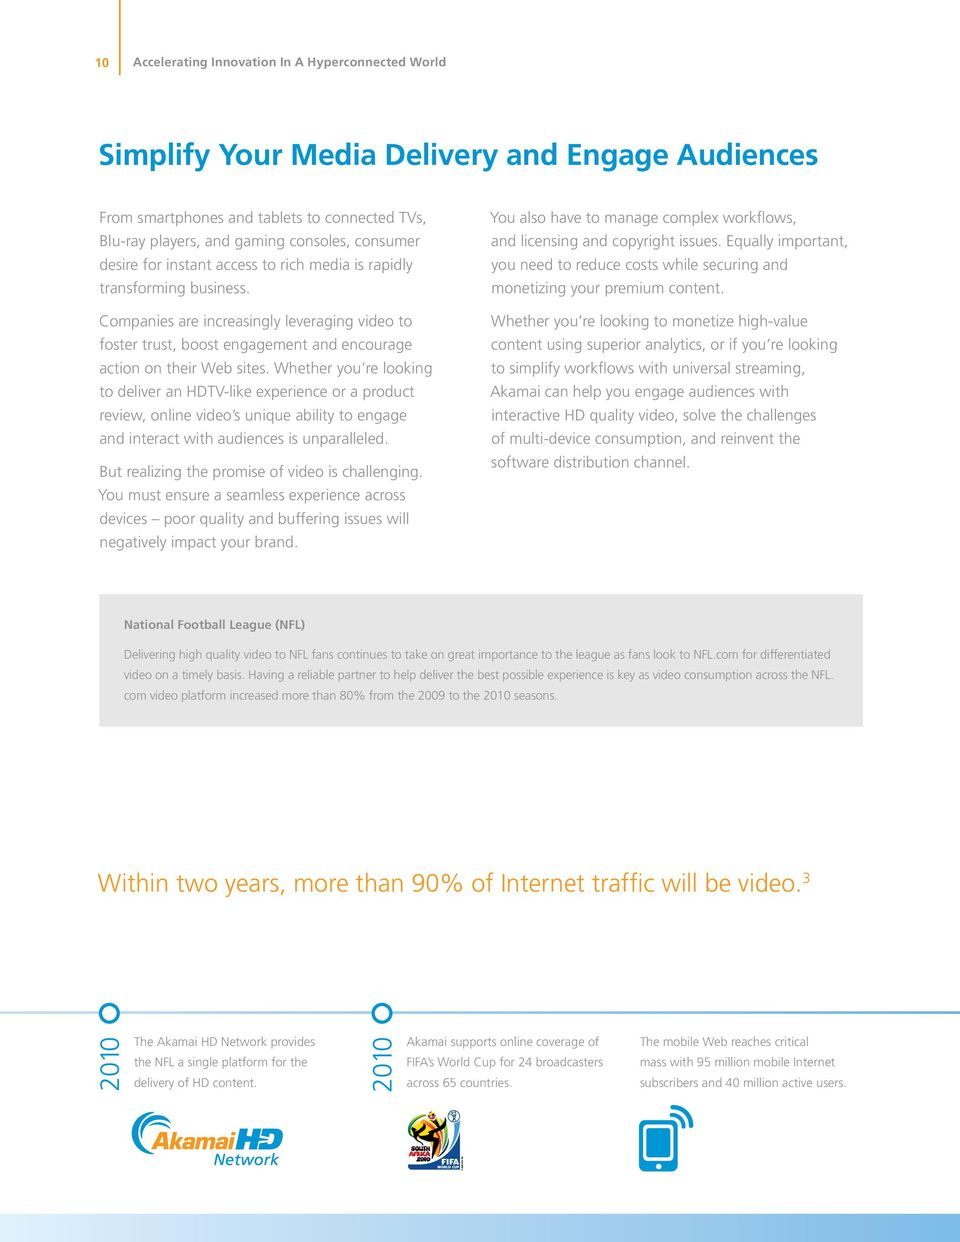 Whether you re looking to deliver an HDTV-like experience or a product review, online video s unique ability to engage and interact with audiences is unparalleled.